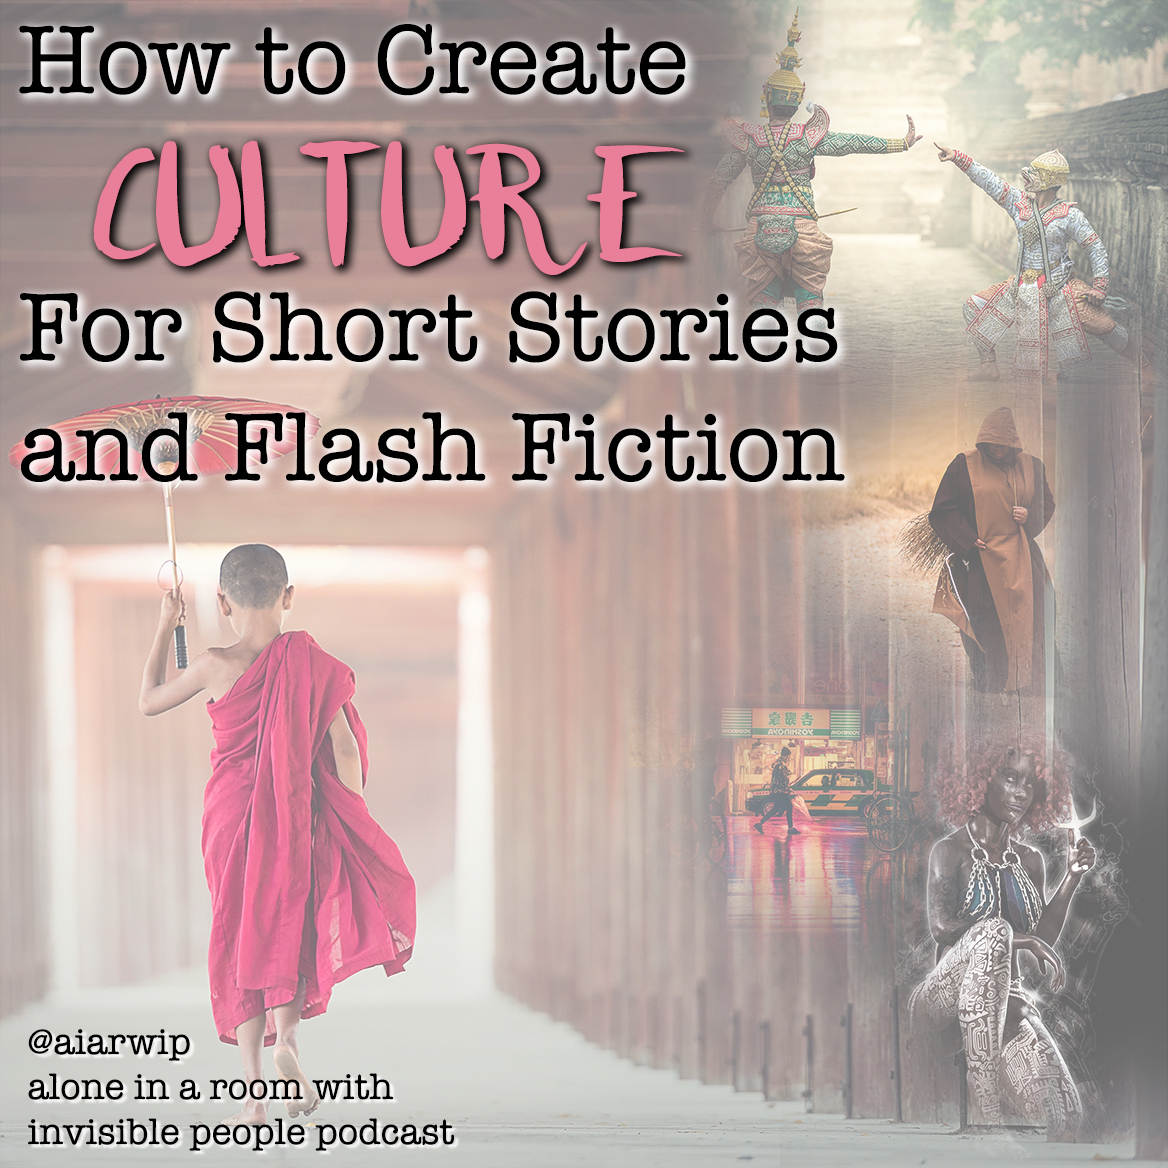 How to Create Culture for Short Stories and Flash Fiction